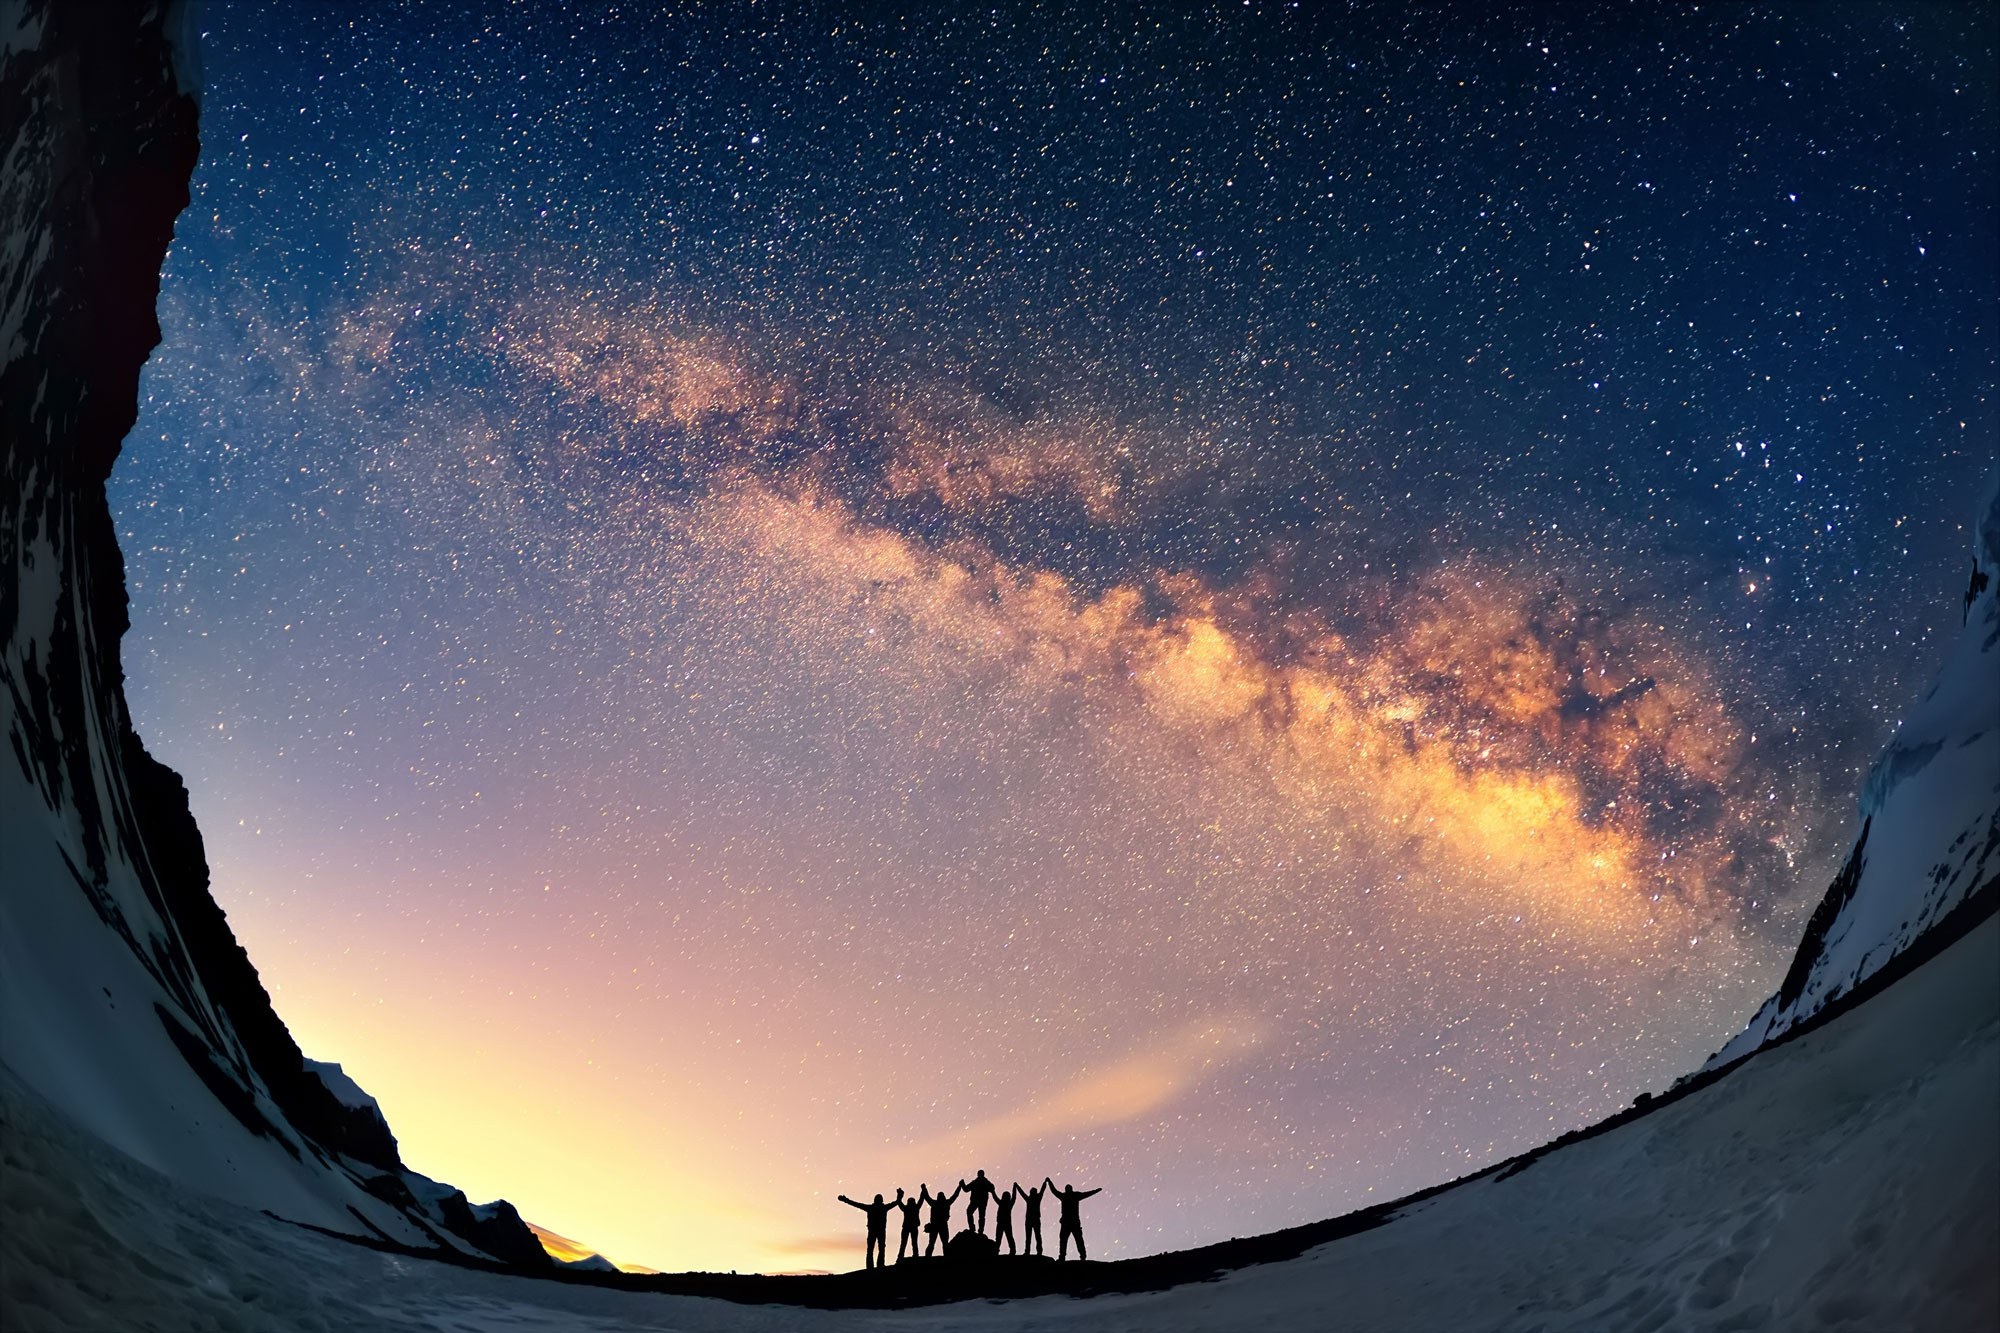 People standing under a starry sky